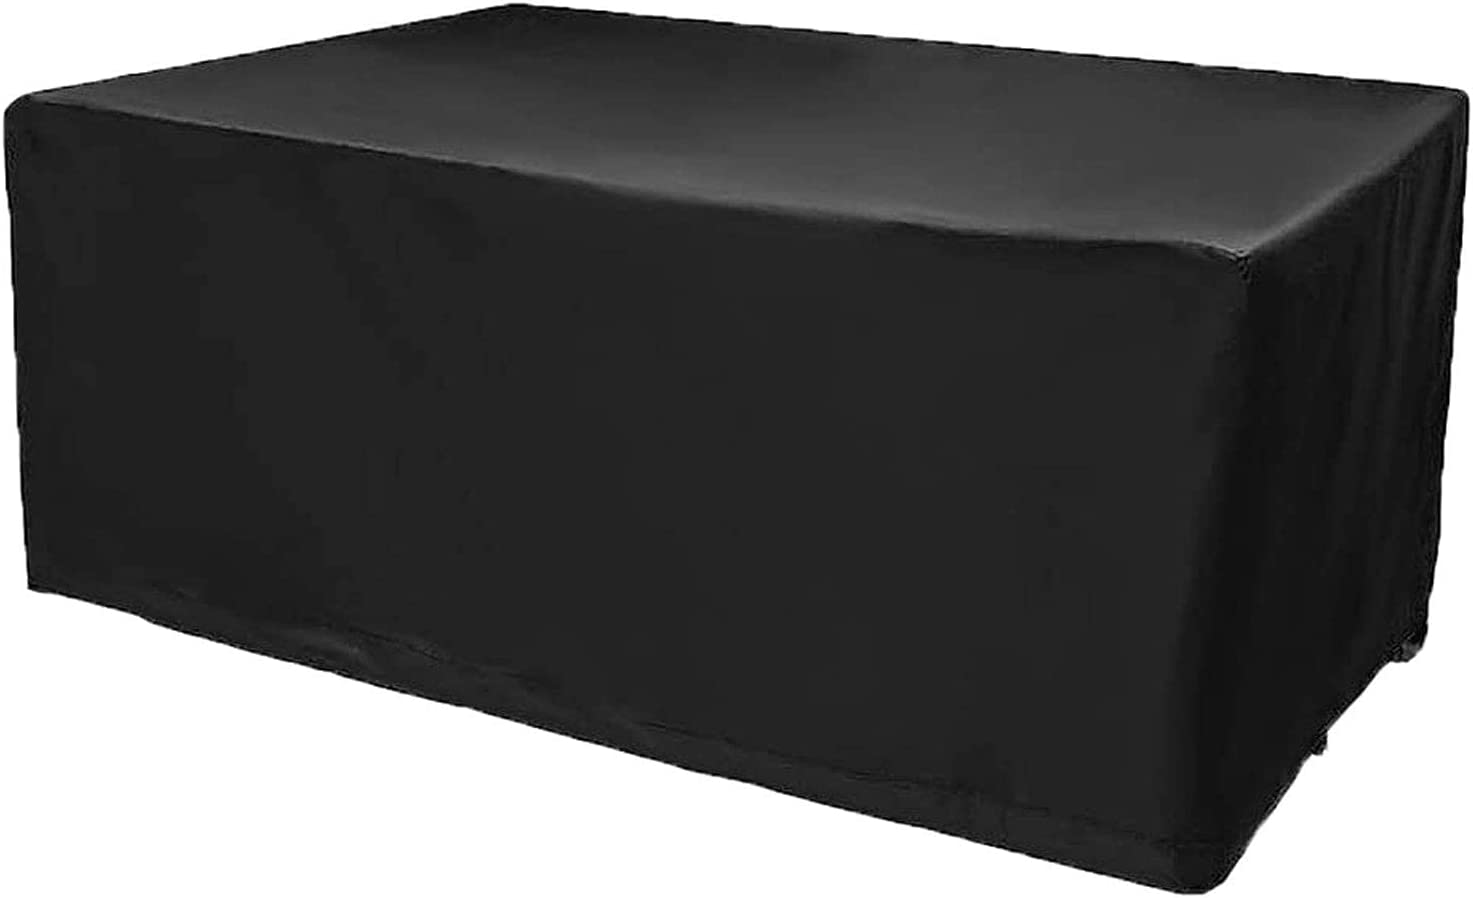 Fort Worth Mall WFSH Outdoor Furniture Cover Garden Indianapolis Mall Covers Waterproof